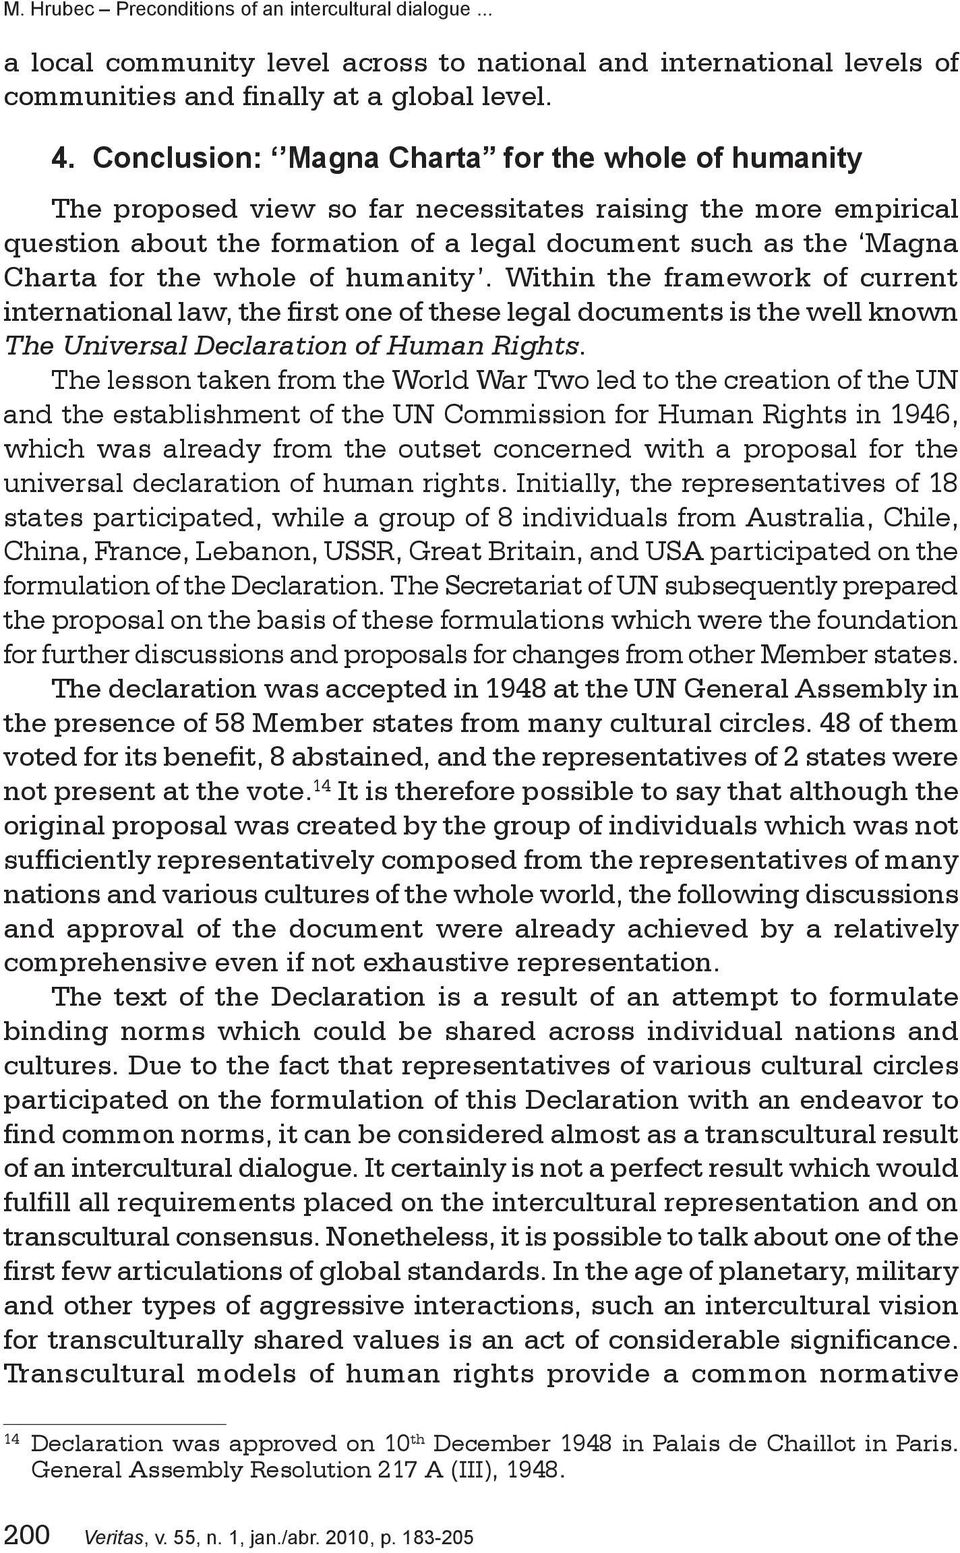 whole of humanity. Within the framework of current international law, the first one of these legal documents is the well known The Universal Declaration of Human Rights.